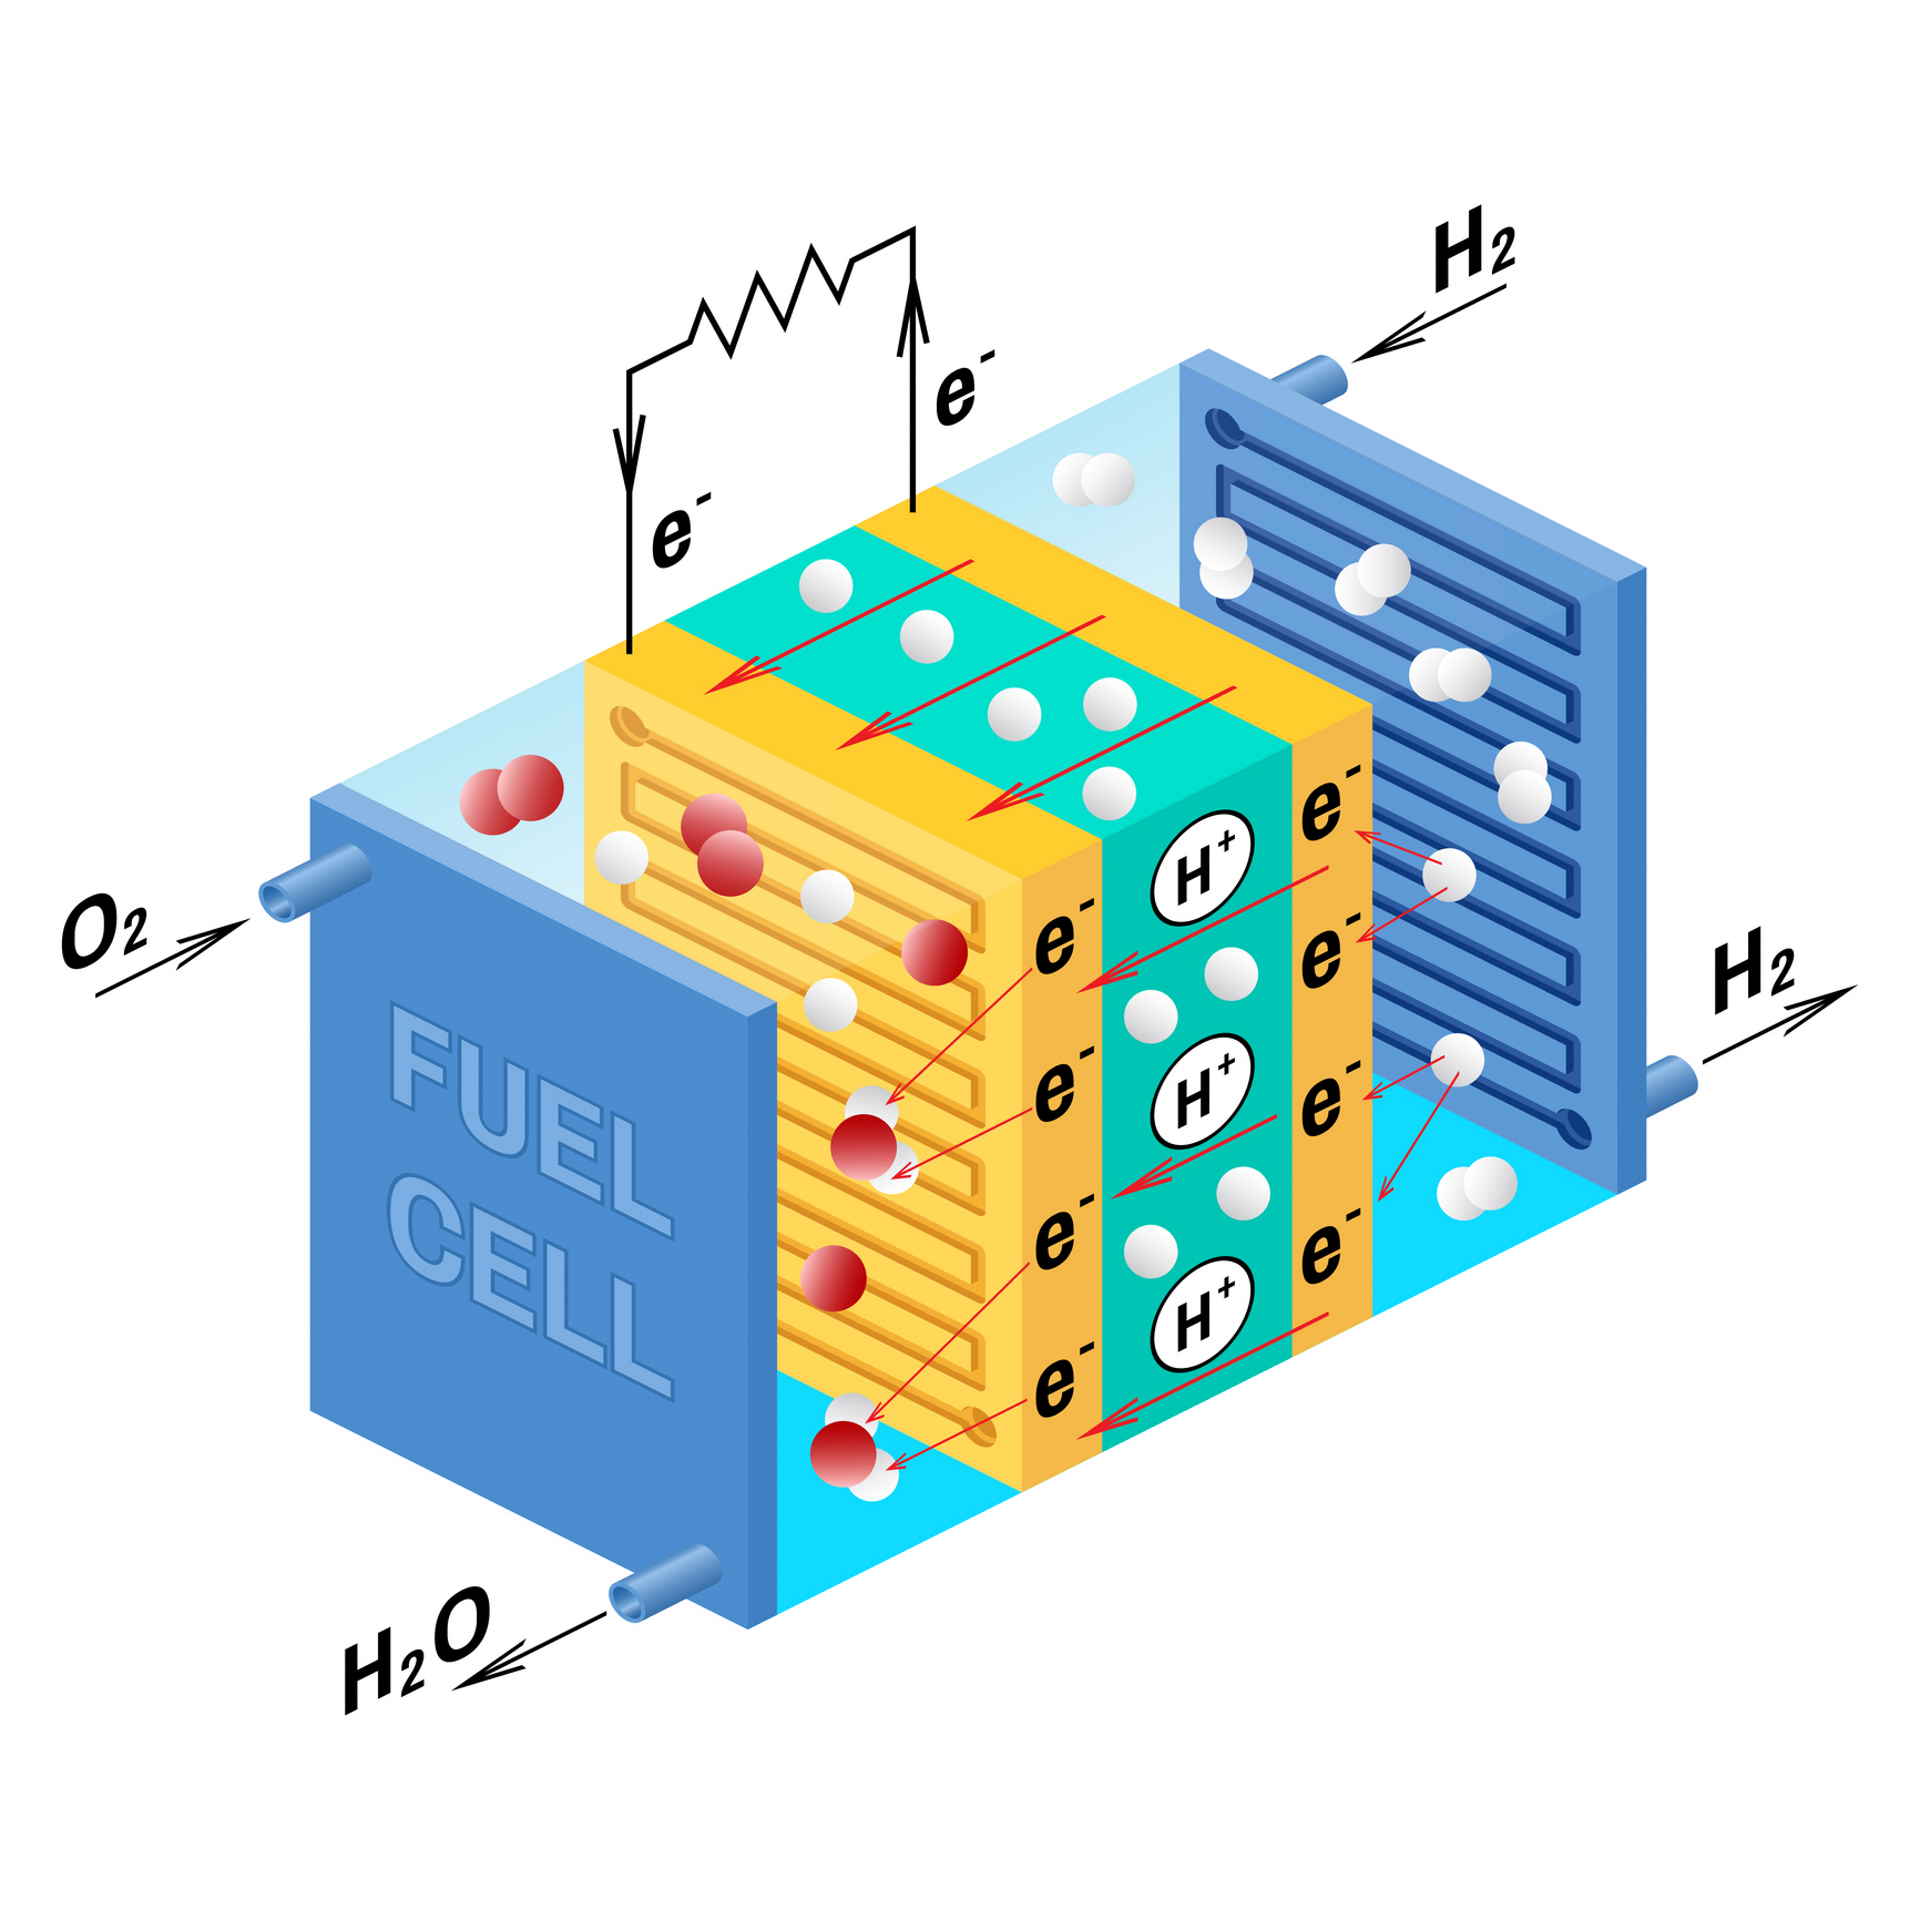 A PEM, Proton Exchange Membrane cell uses hydrogen gas and oxygen gas as fuel.